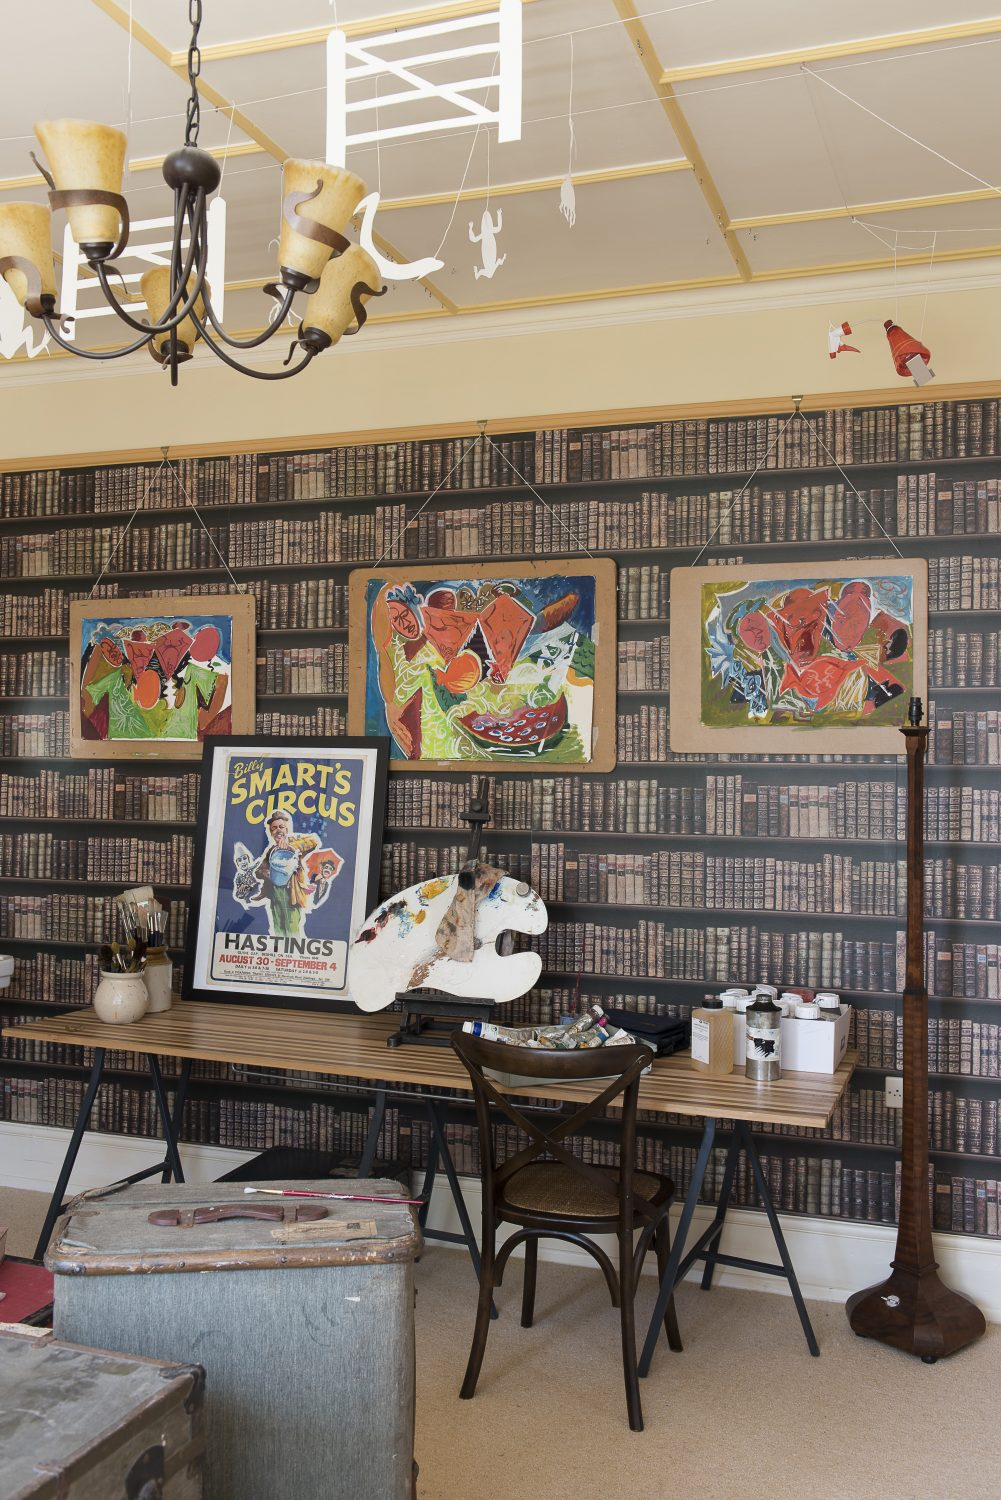 The upstairs room is known as the library because of the book wallpaper